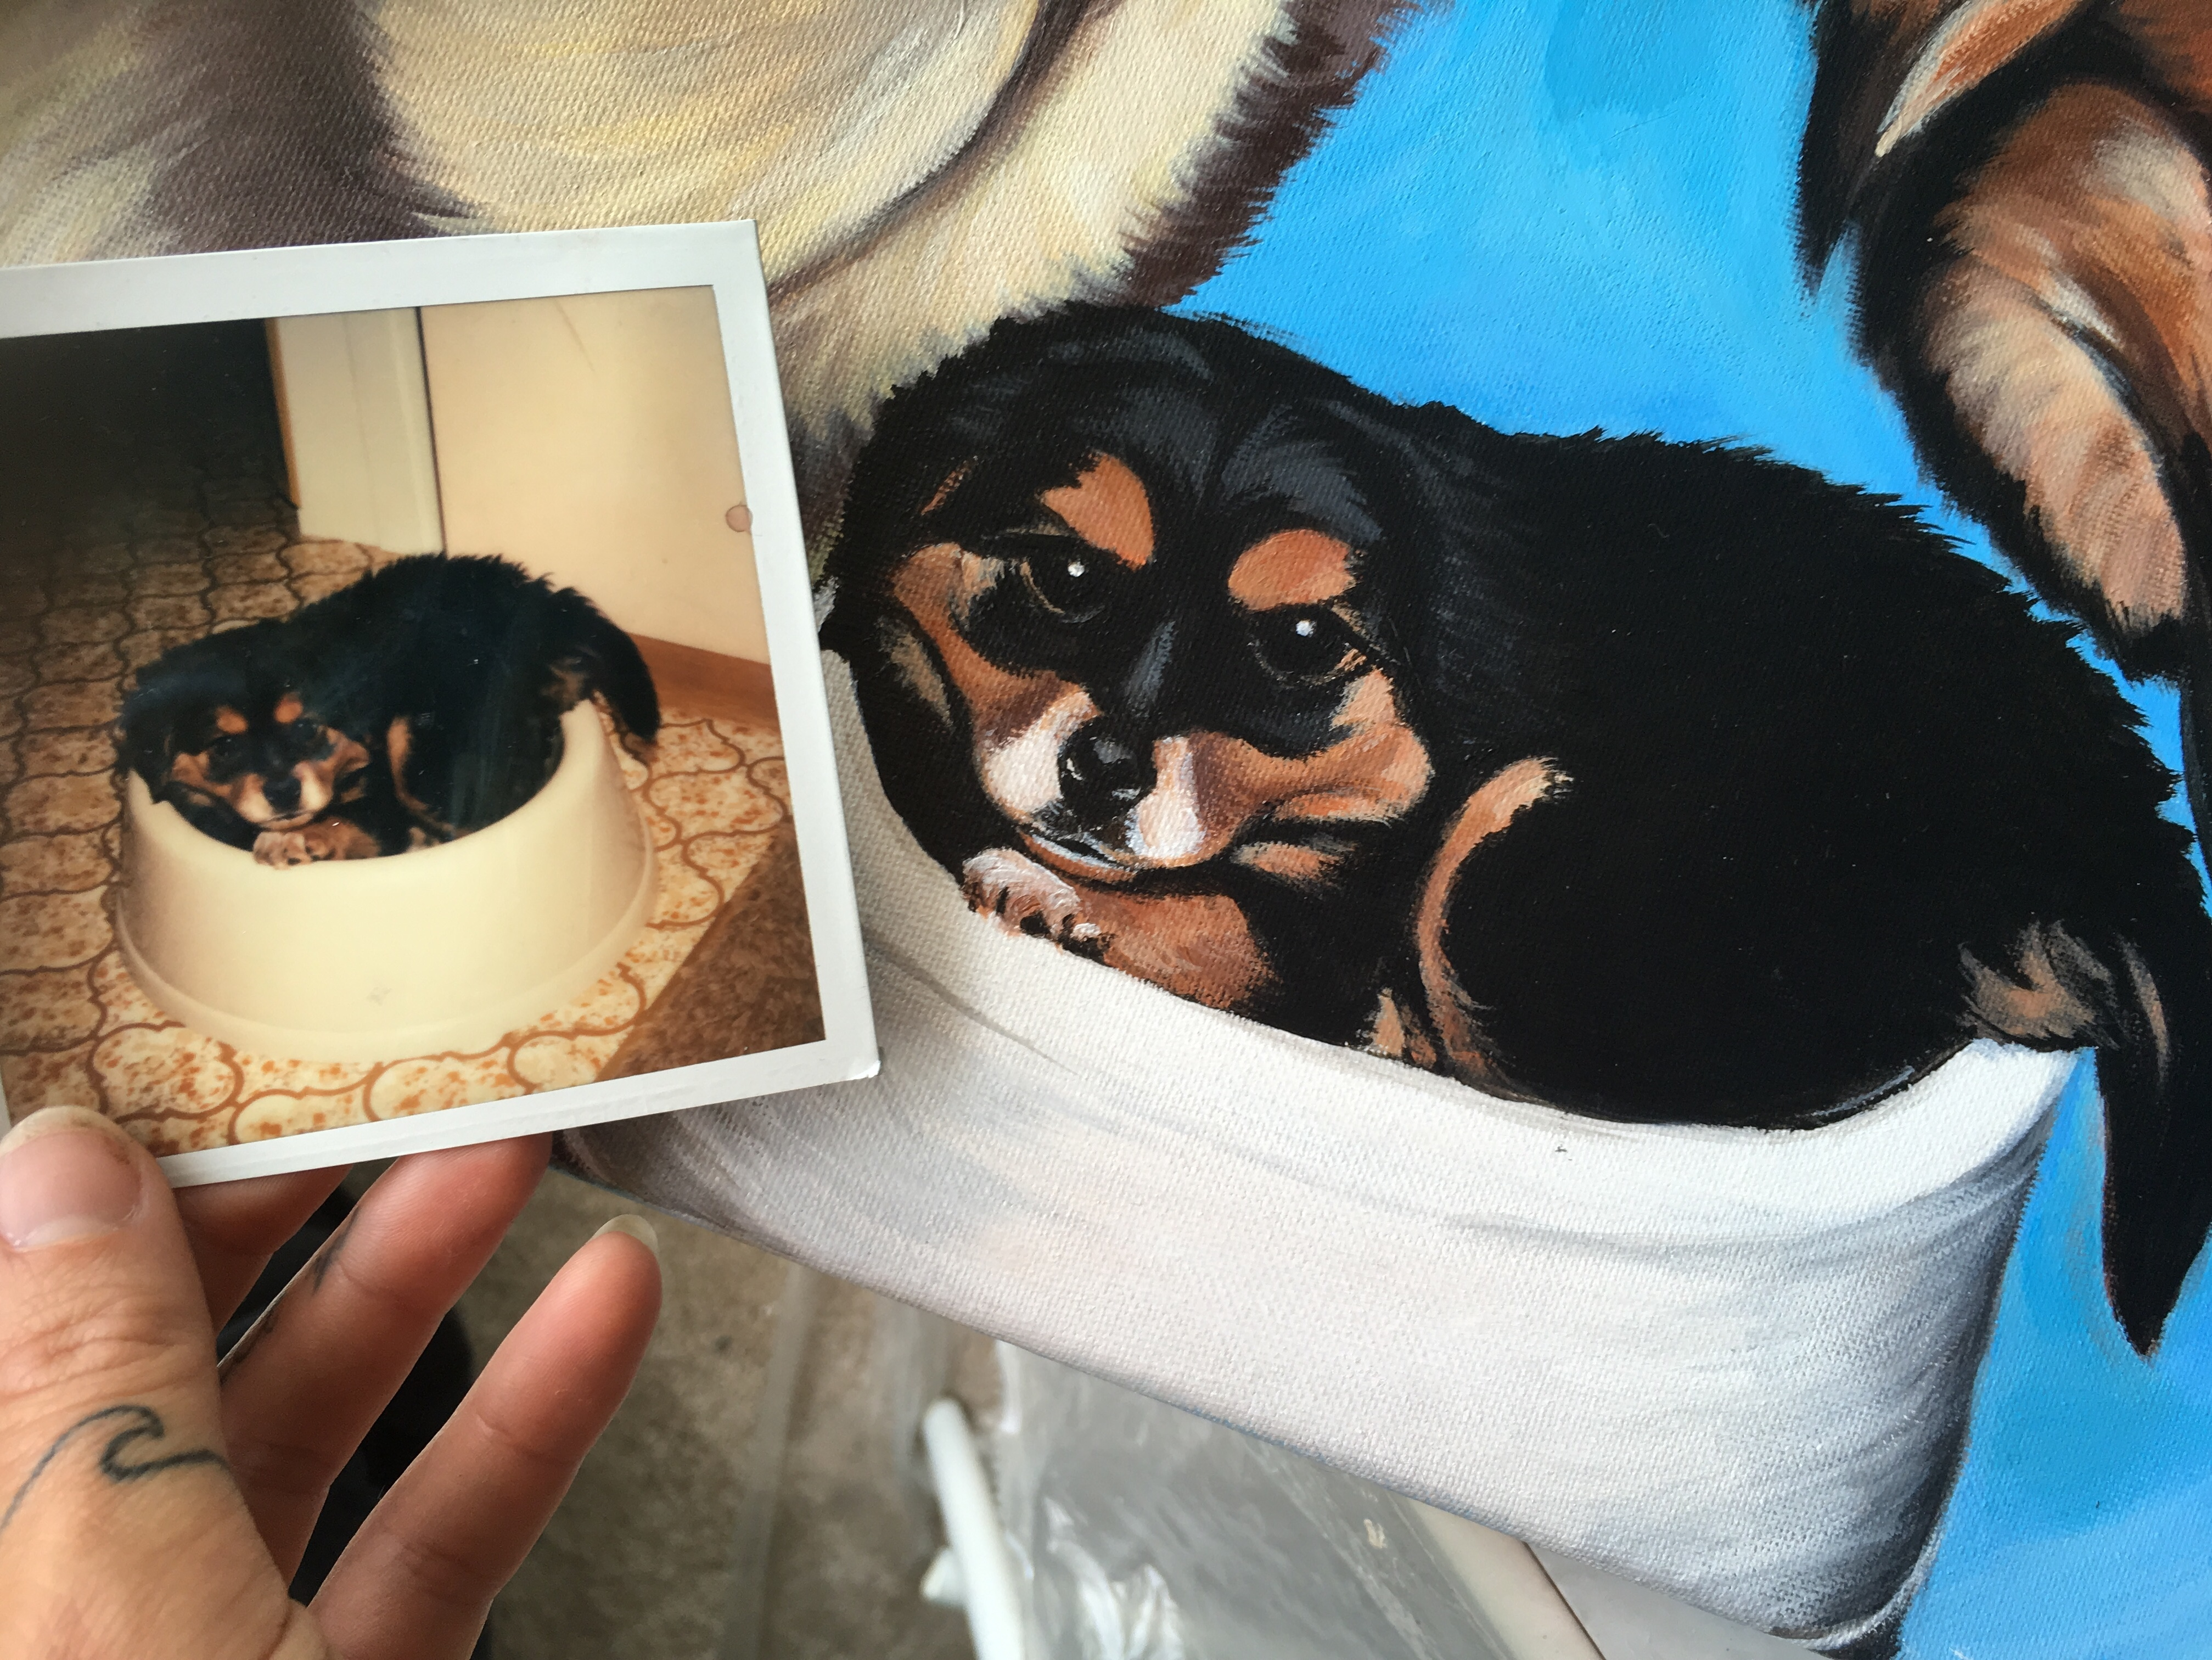 dog on painting and in polaroid